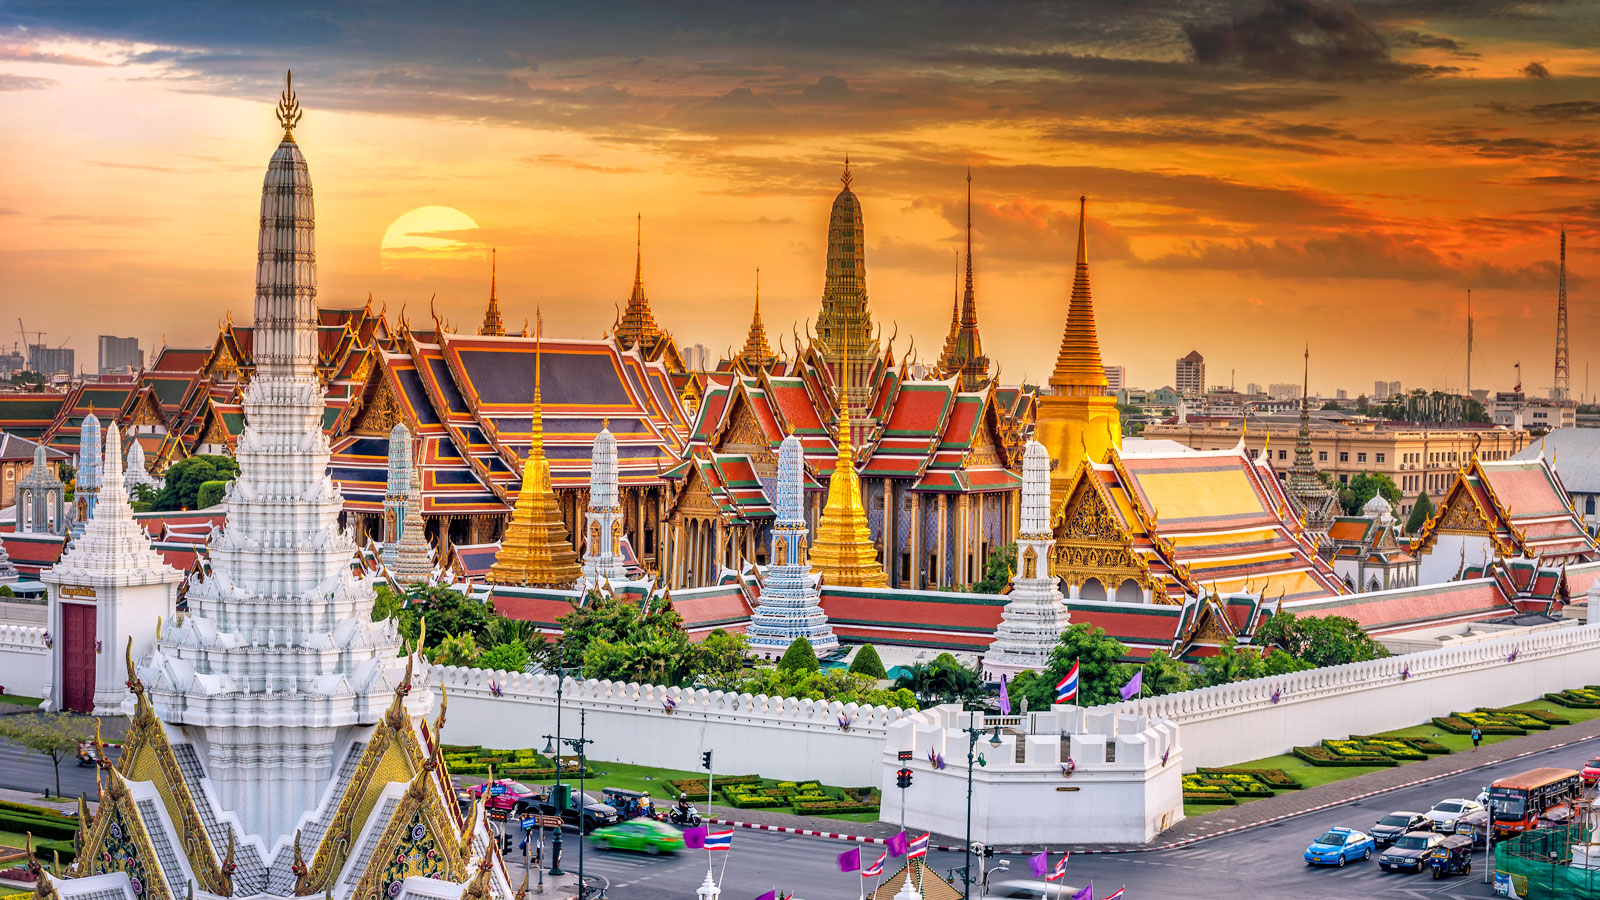 Grand palace, Bangkok.jpg bangkok 1 day itinerary, things to do in bangkok in 1 day, what to do in bangkok for 1 day